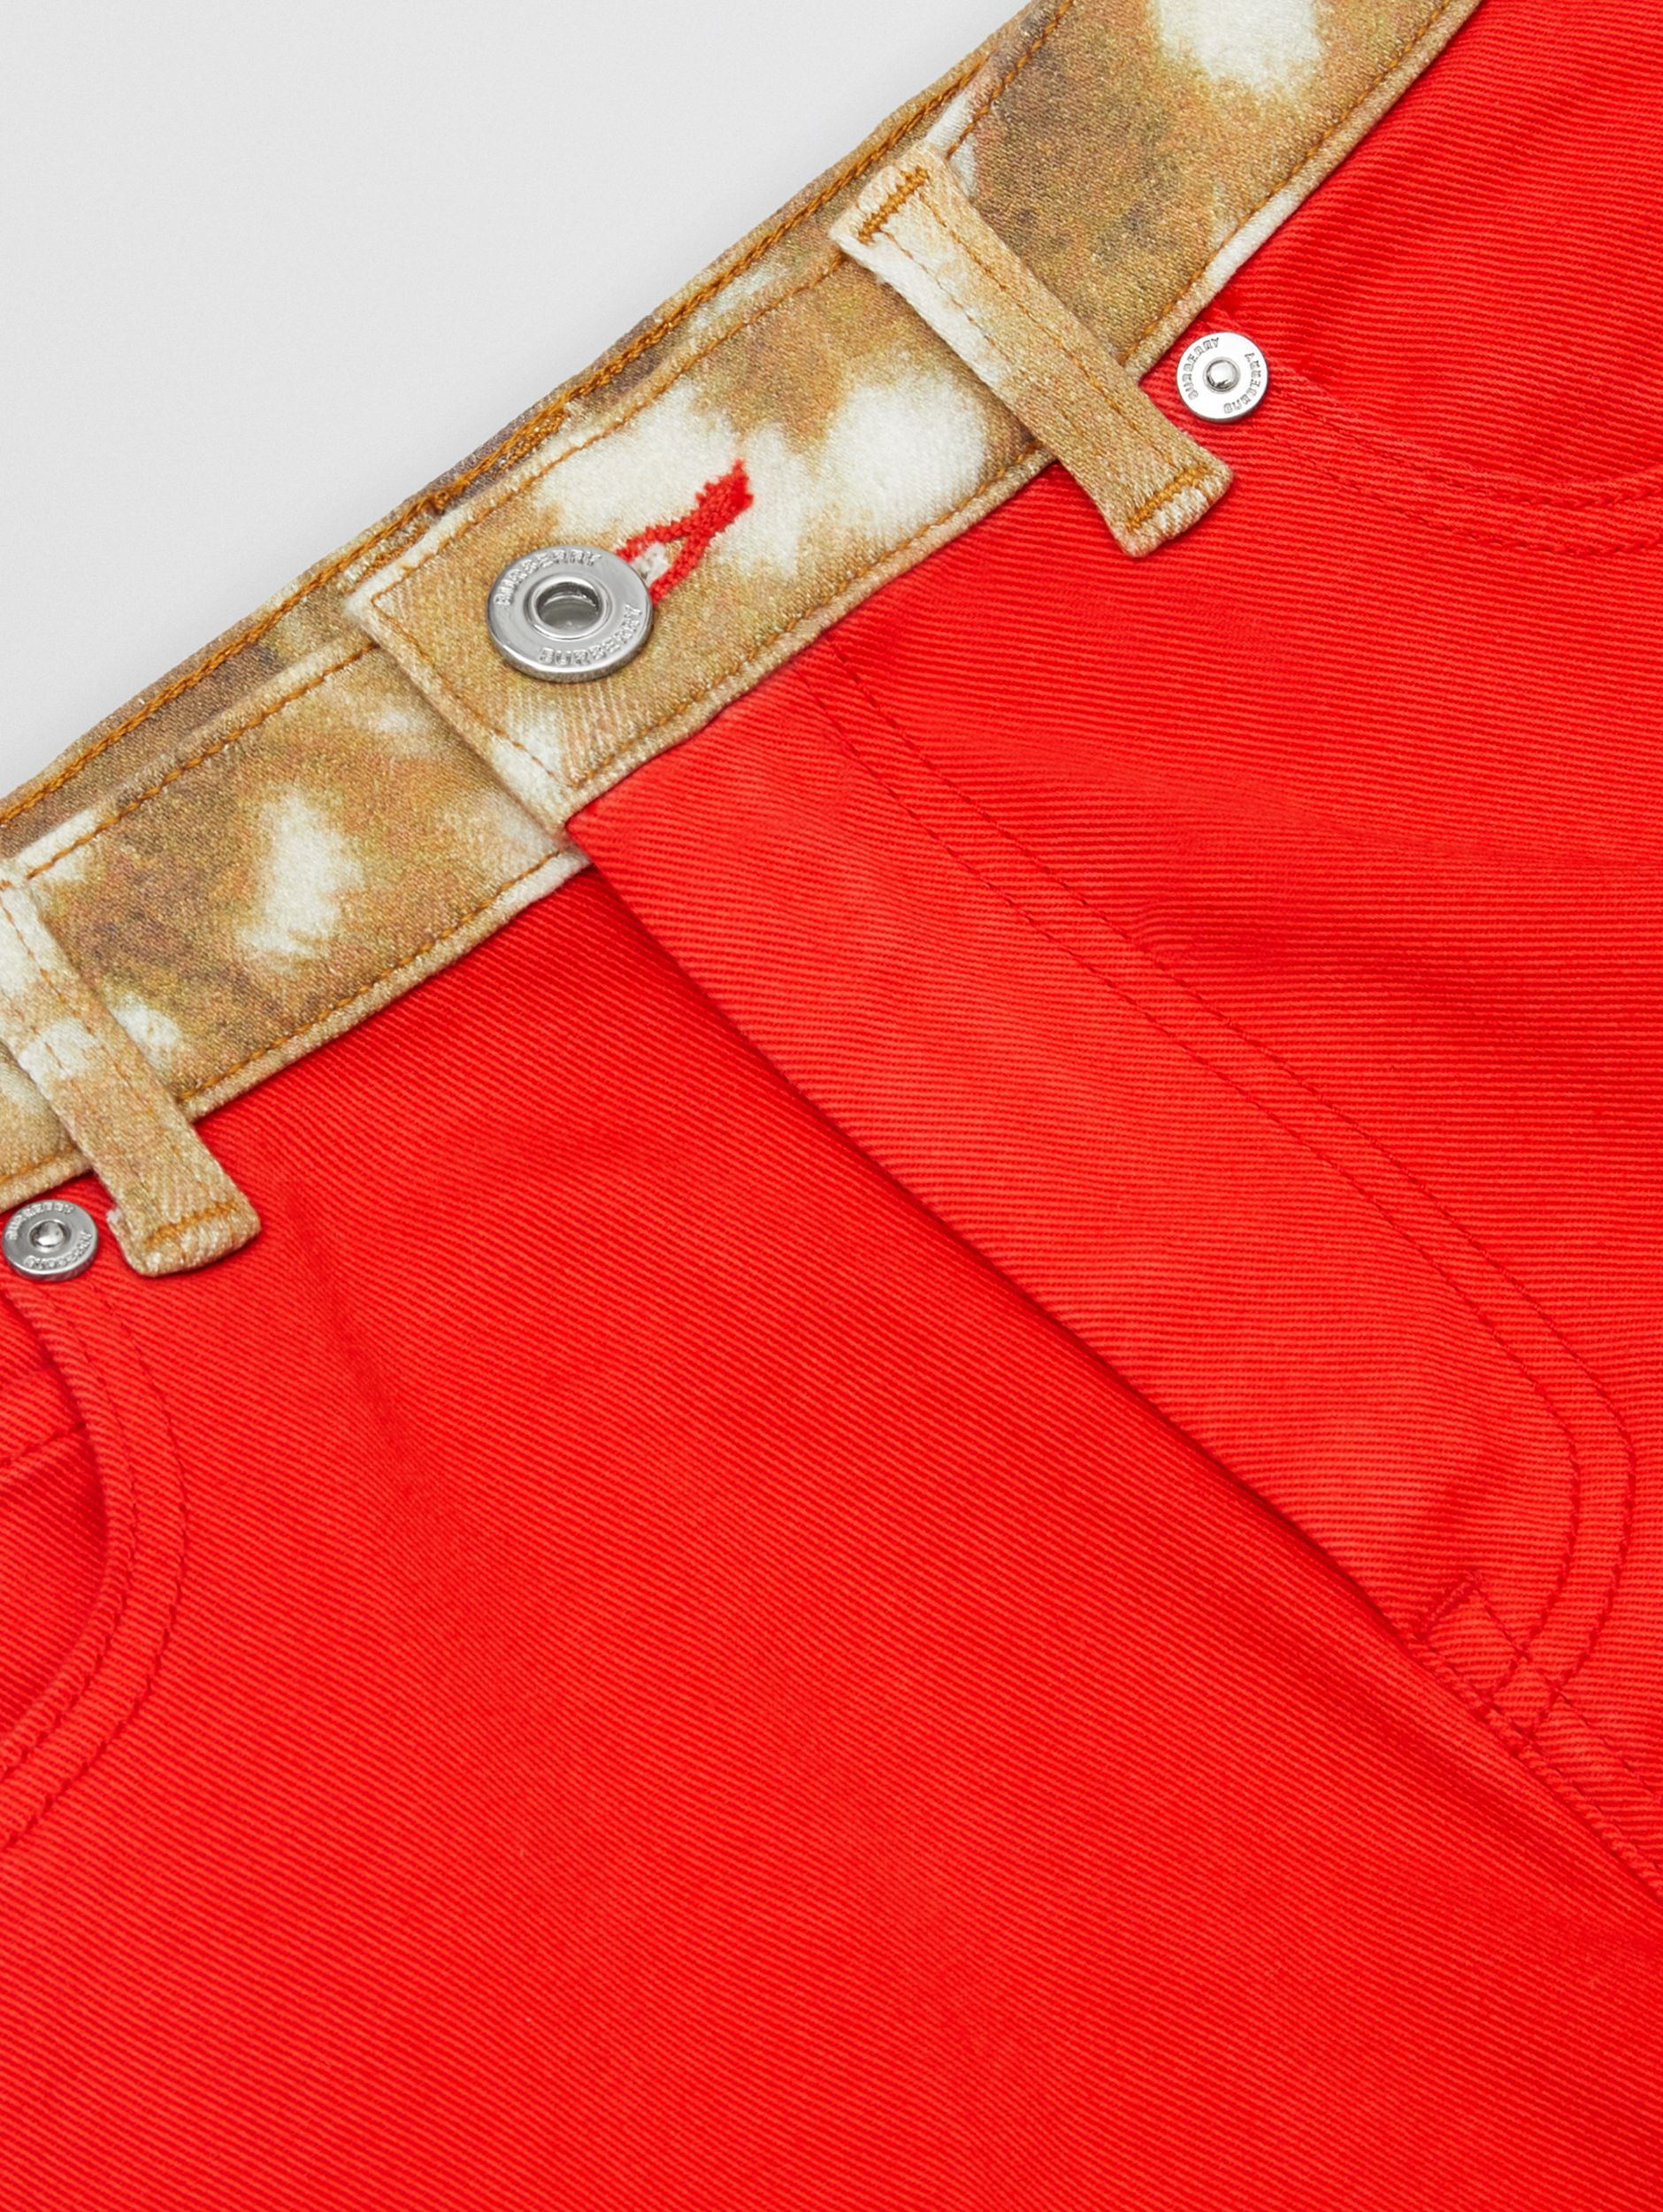 Flared Fit Deer Print Trim Japanese Denim Jeans in Bright Red | Burberry Canada - 2